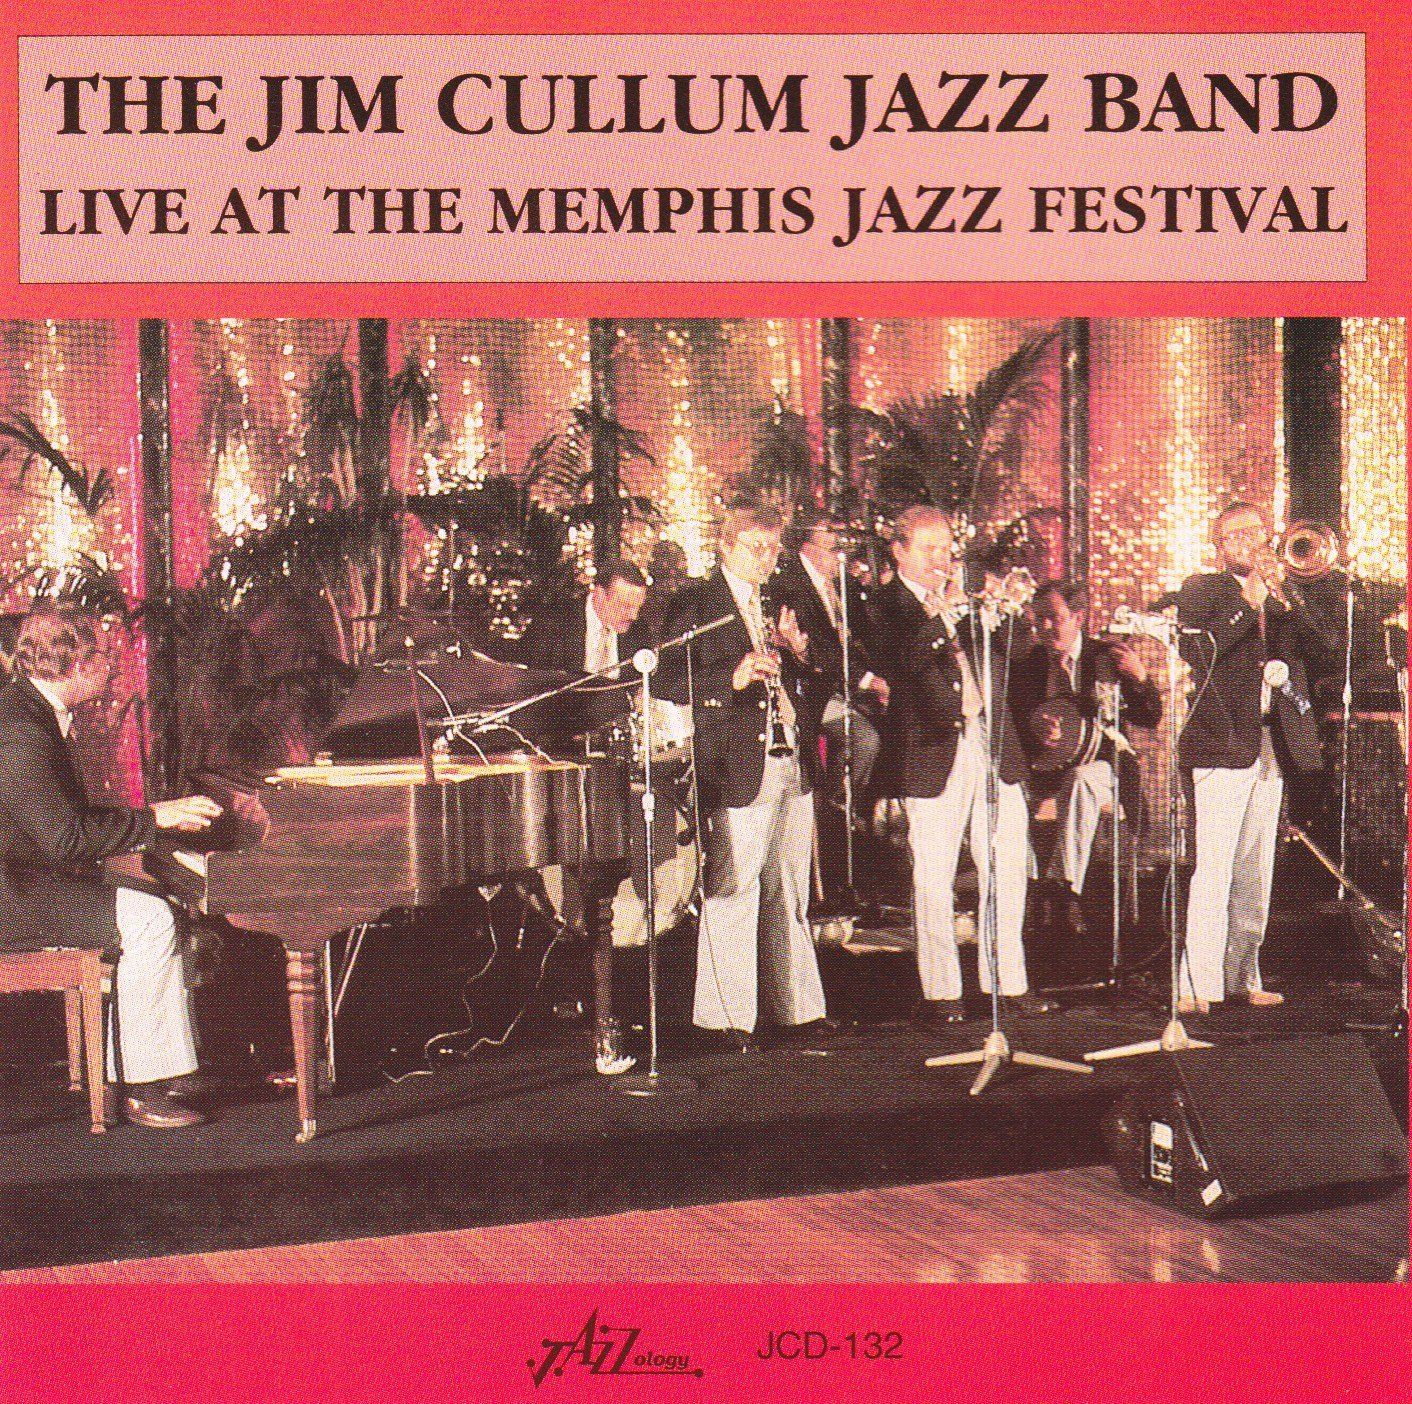 Live at the Memphis Jazz Festival